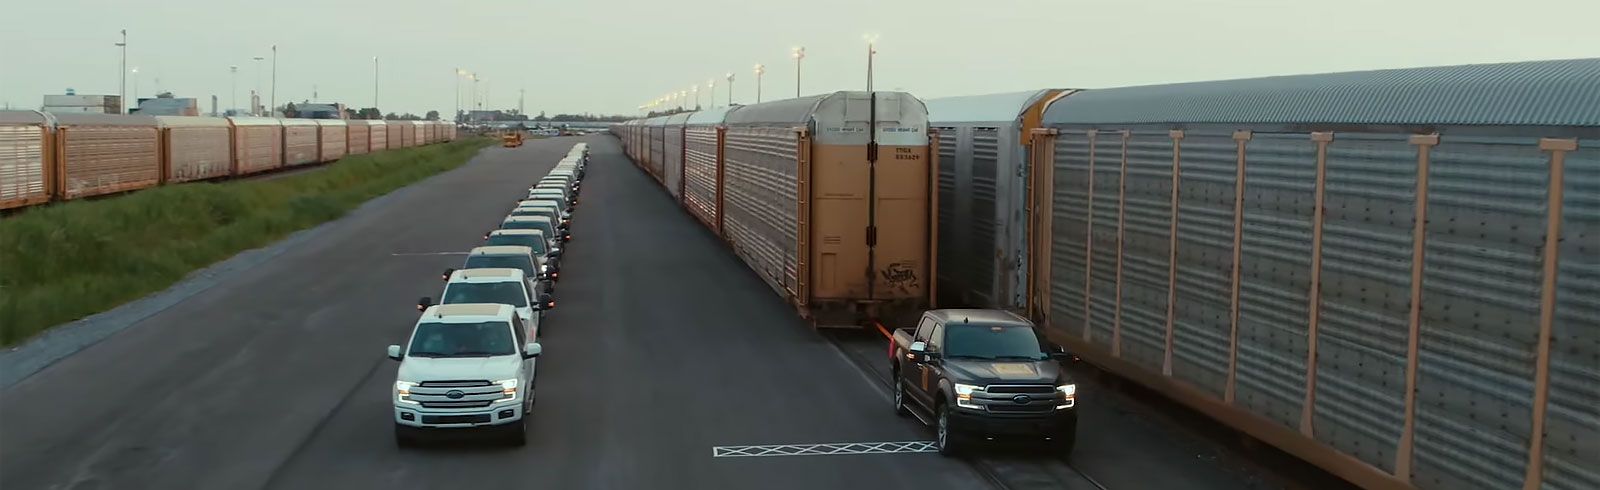 Ford demonstrates an all-electric F-150 truck prototype towing 1.25 million lbs